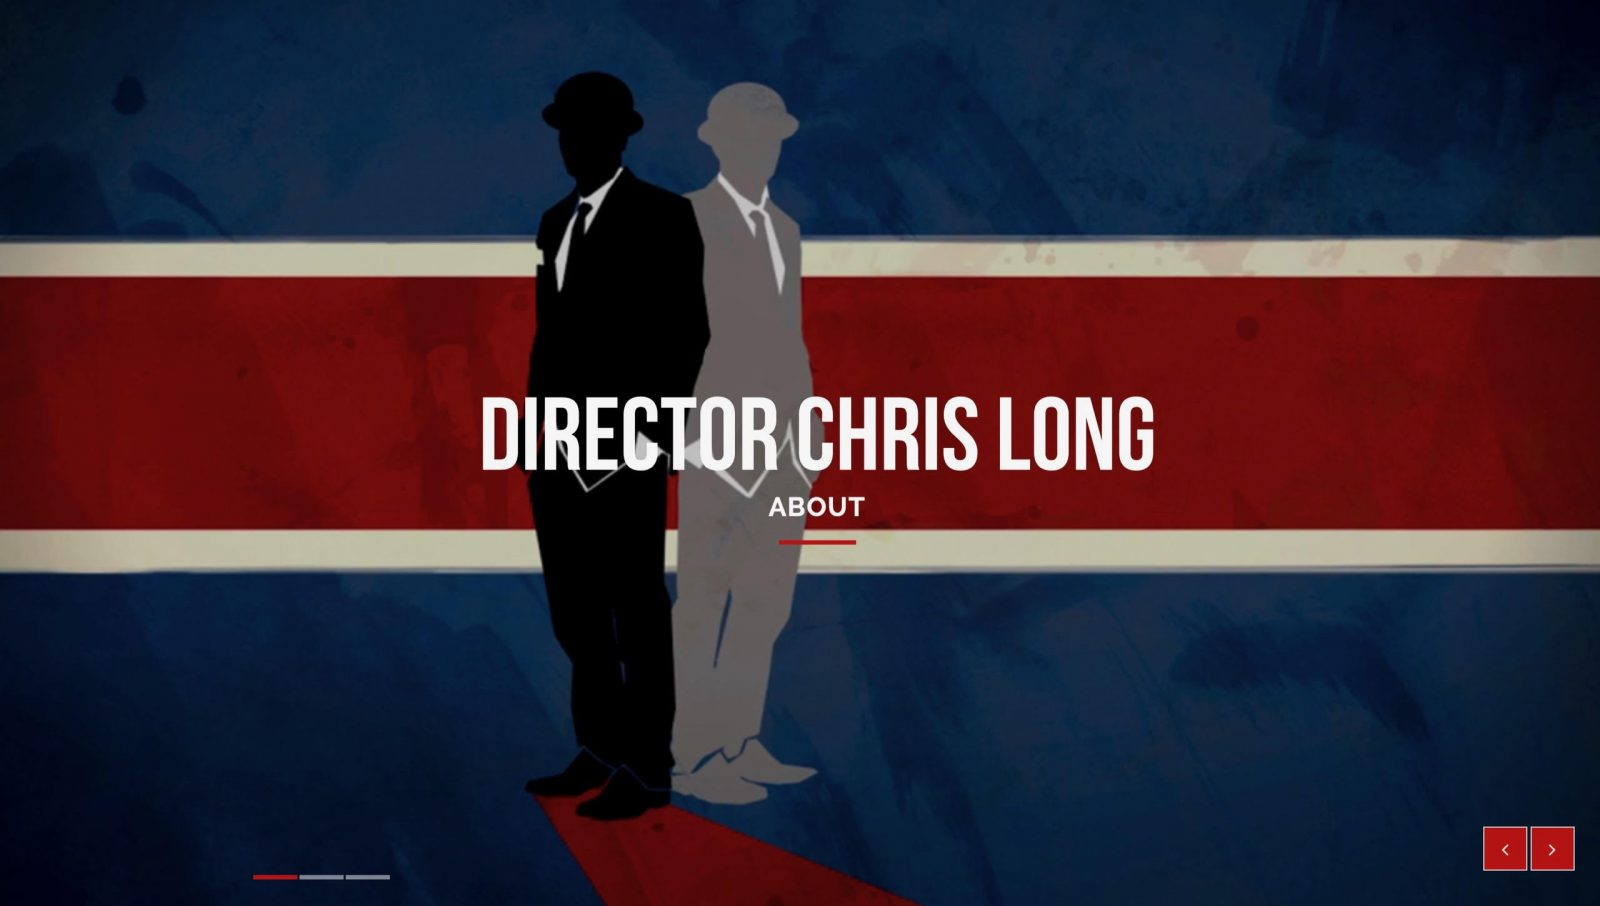 Director Chris Long